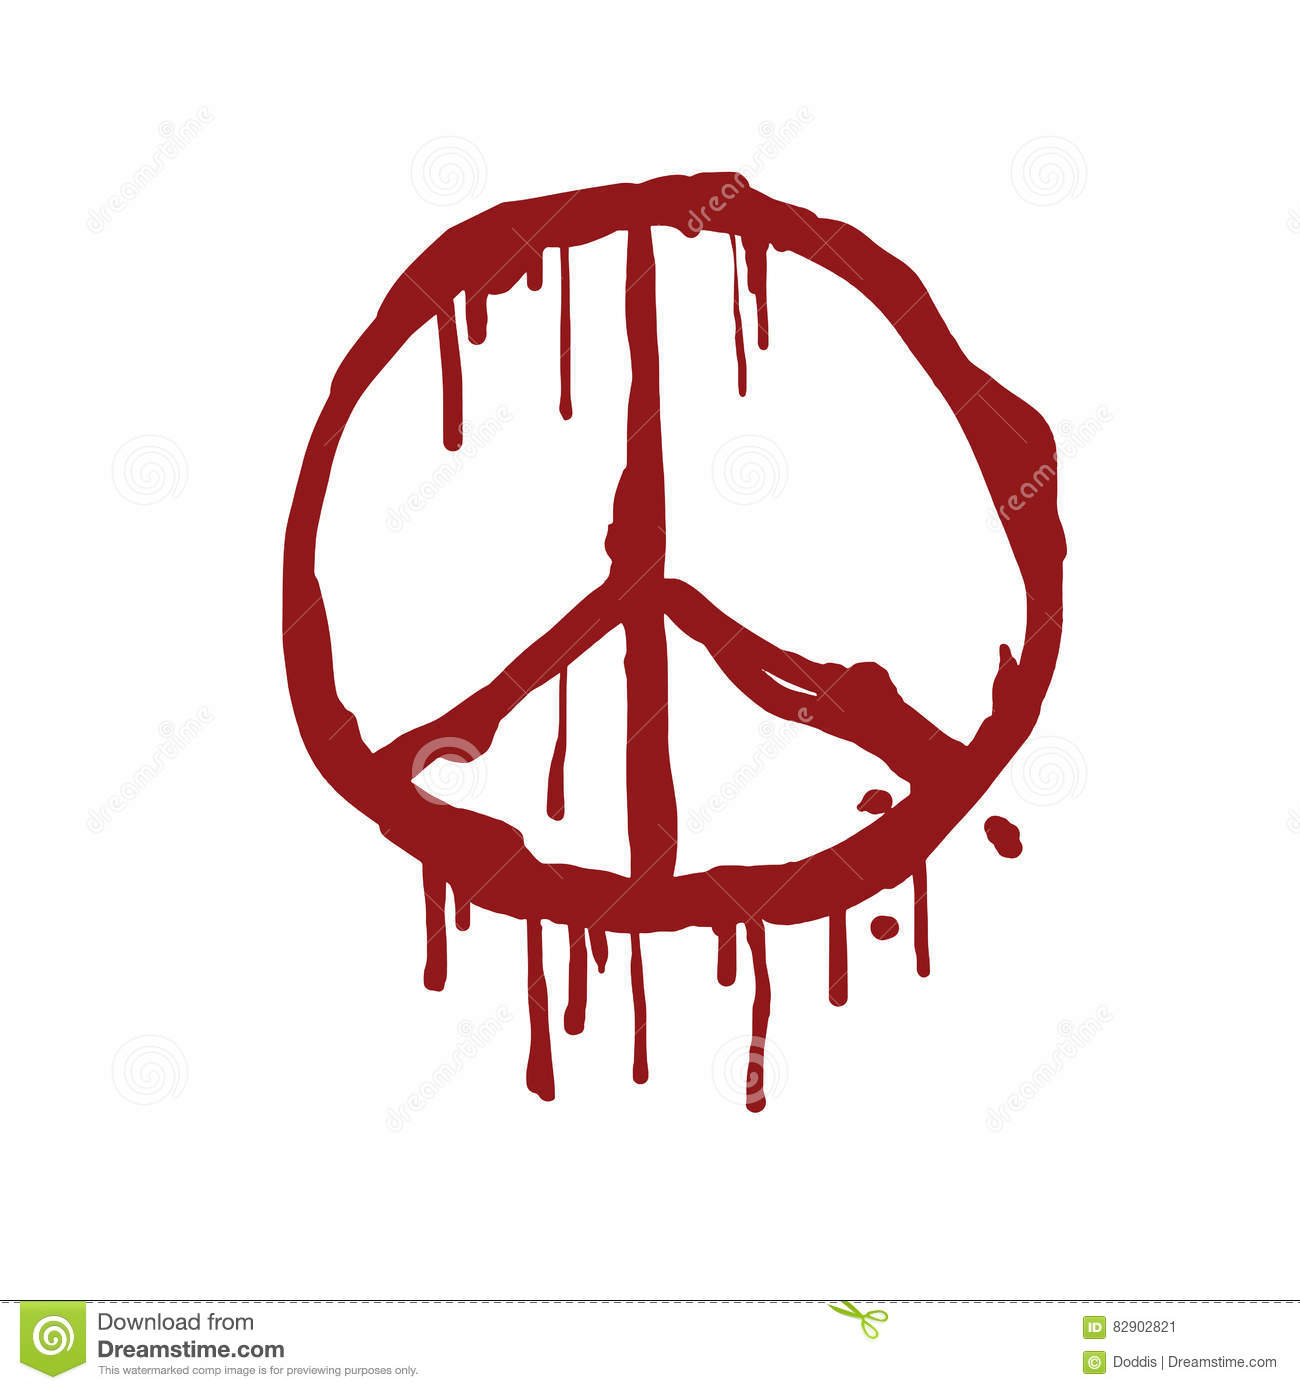 Bloody peace sign vector illustration stock vector illustration bloody peace sign vector illustration biocorpaavc